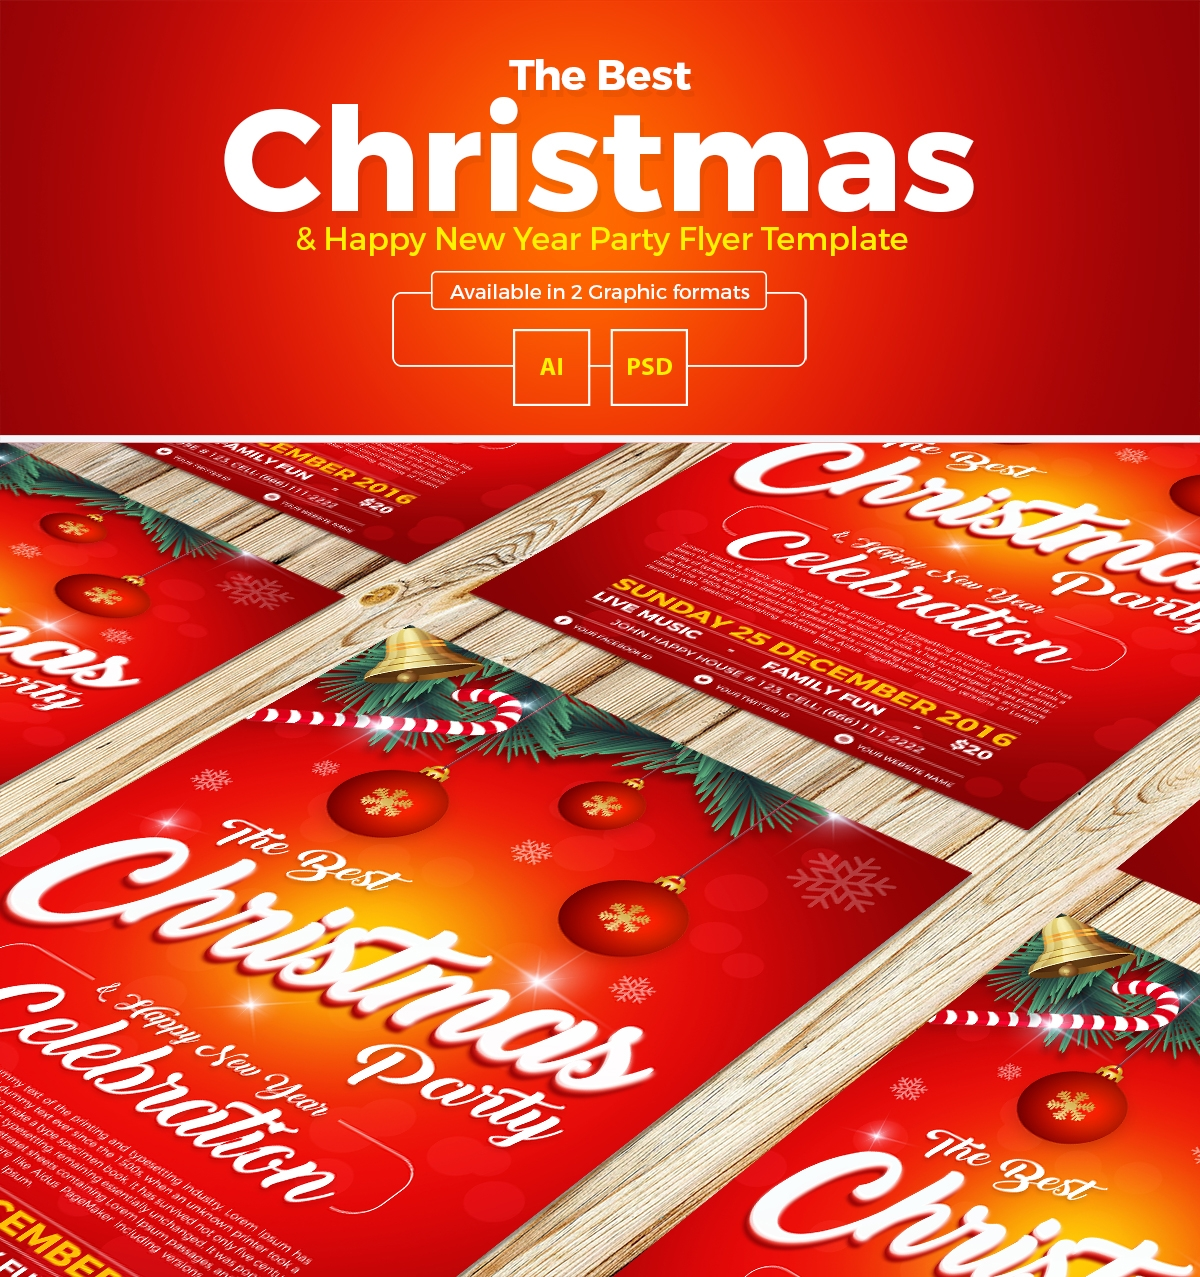 Free Christmas Happy New Year Party Flyer Template In Ai Psd Format